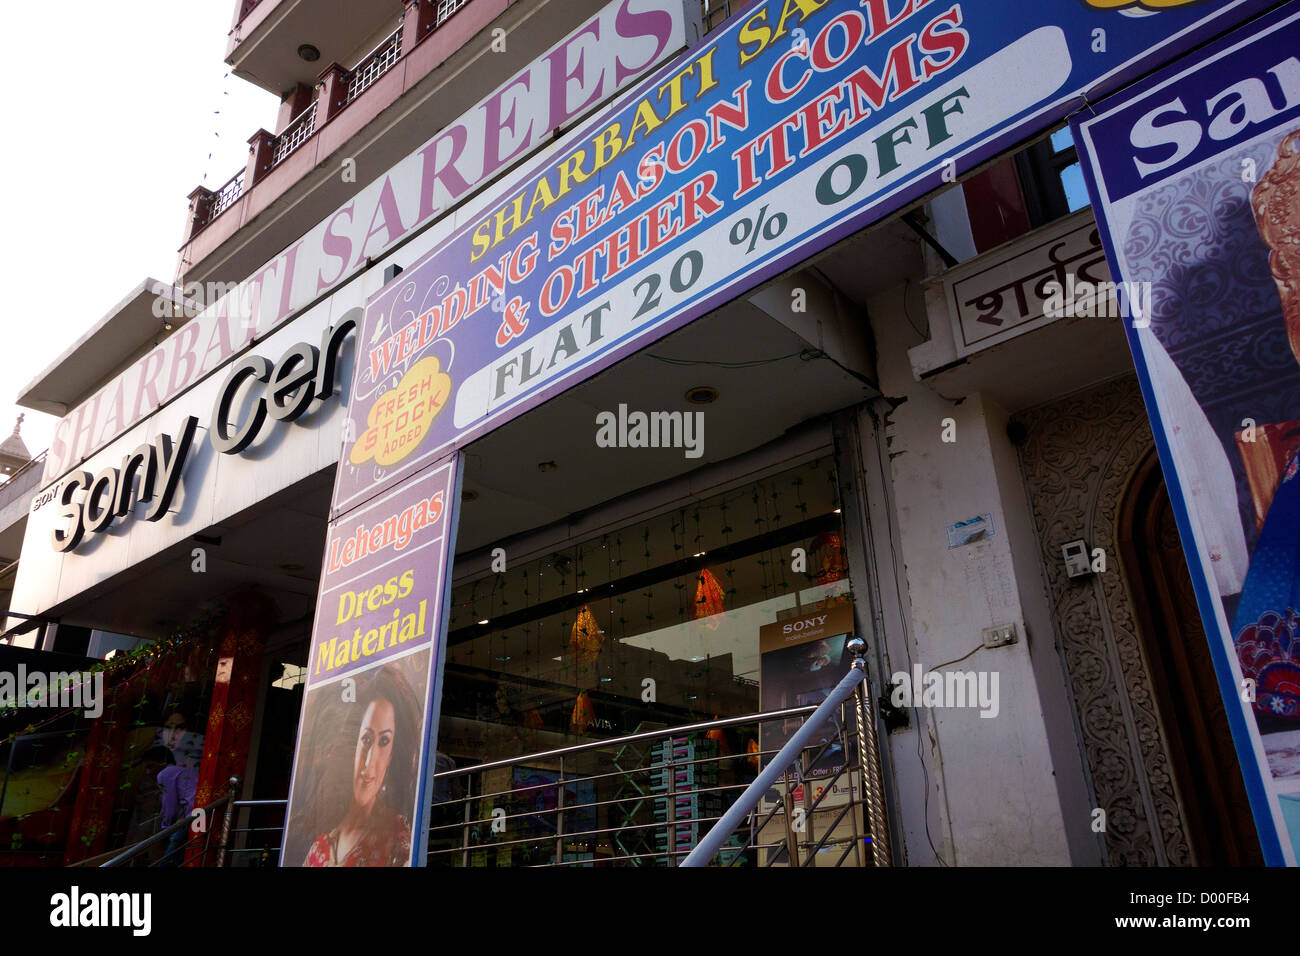 Kamla Nagar Market Old Delhi Business Commercial Hub Center Shops Showrooms Sony Retail Showroom - Stock Image